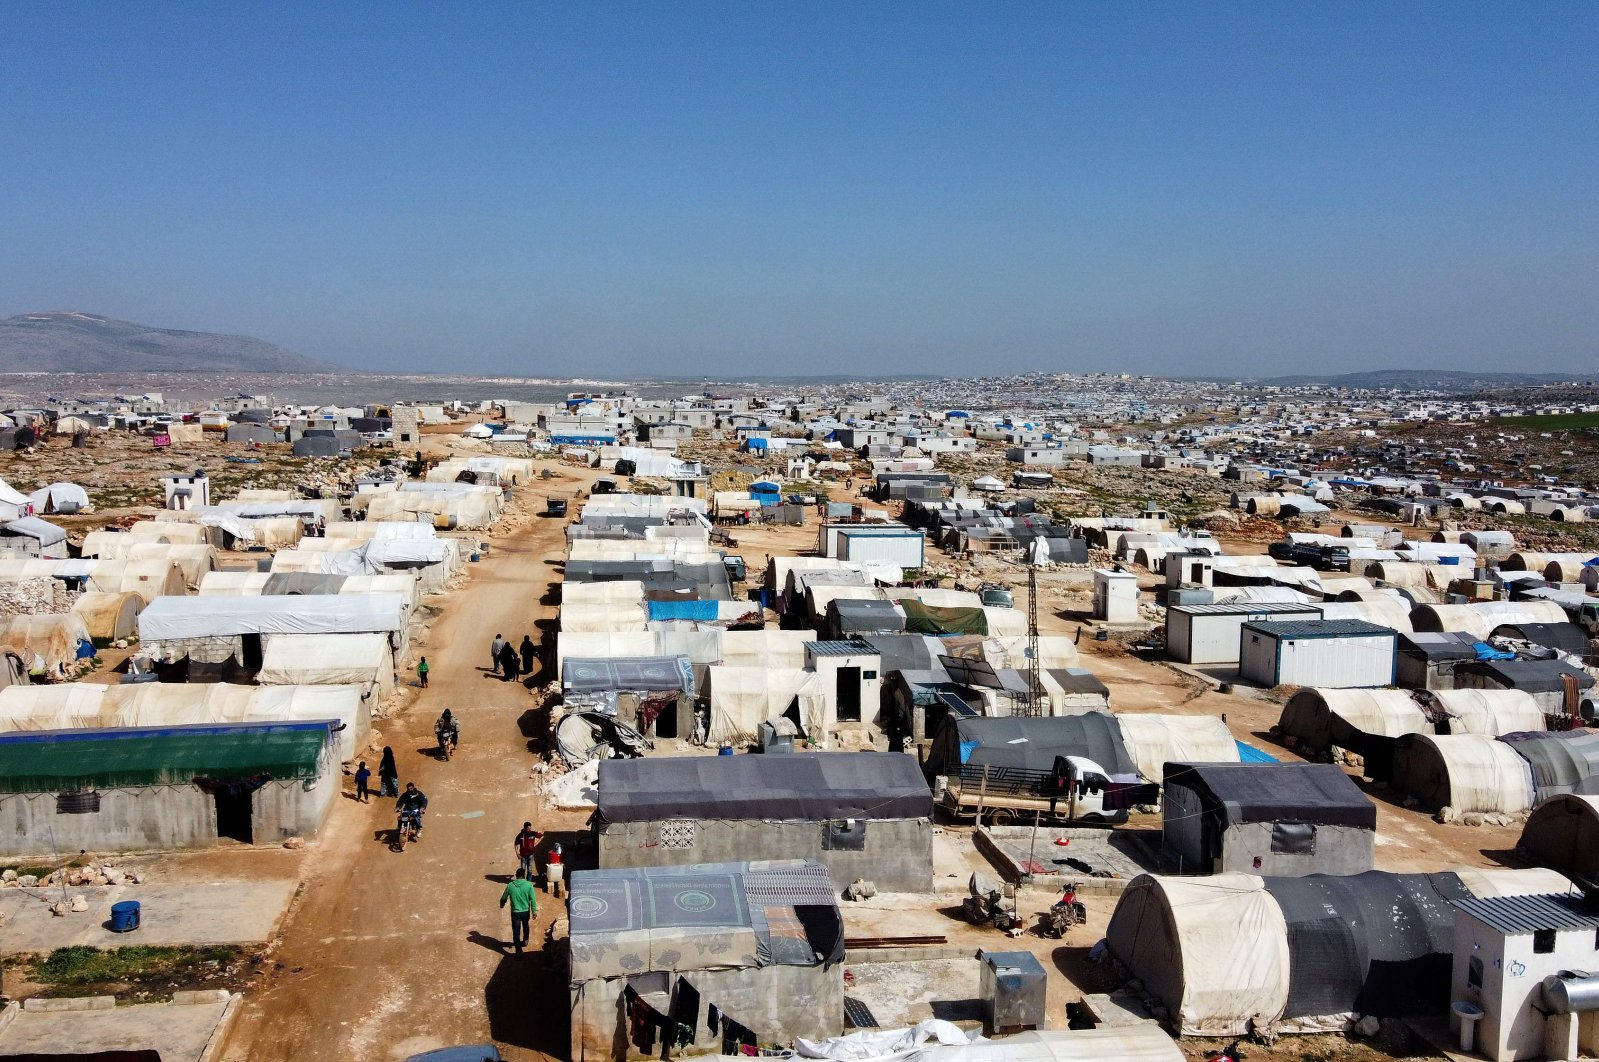 A general view of the Kafr Lusin camp for displaced Syrians near the border with Turkey, in Syria's northwestern province of Idlib, March 23, 2020. (AFP Photo)